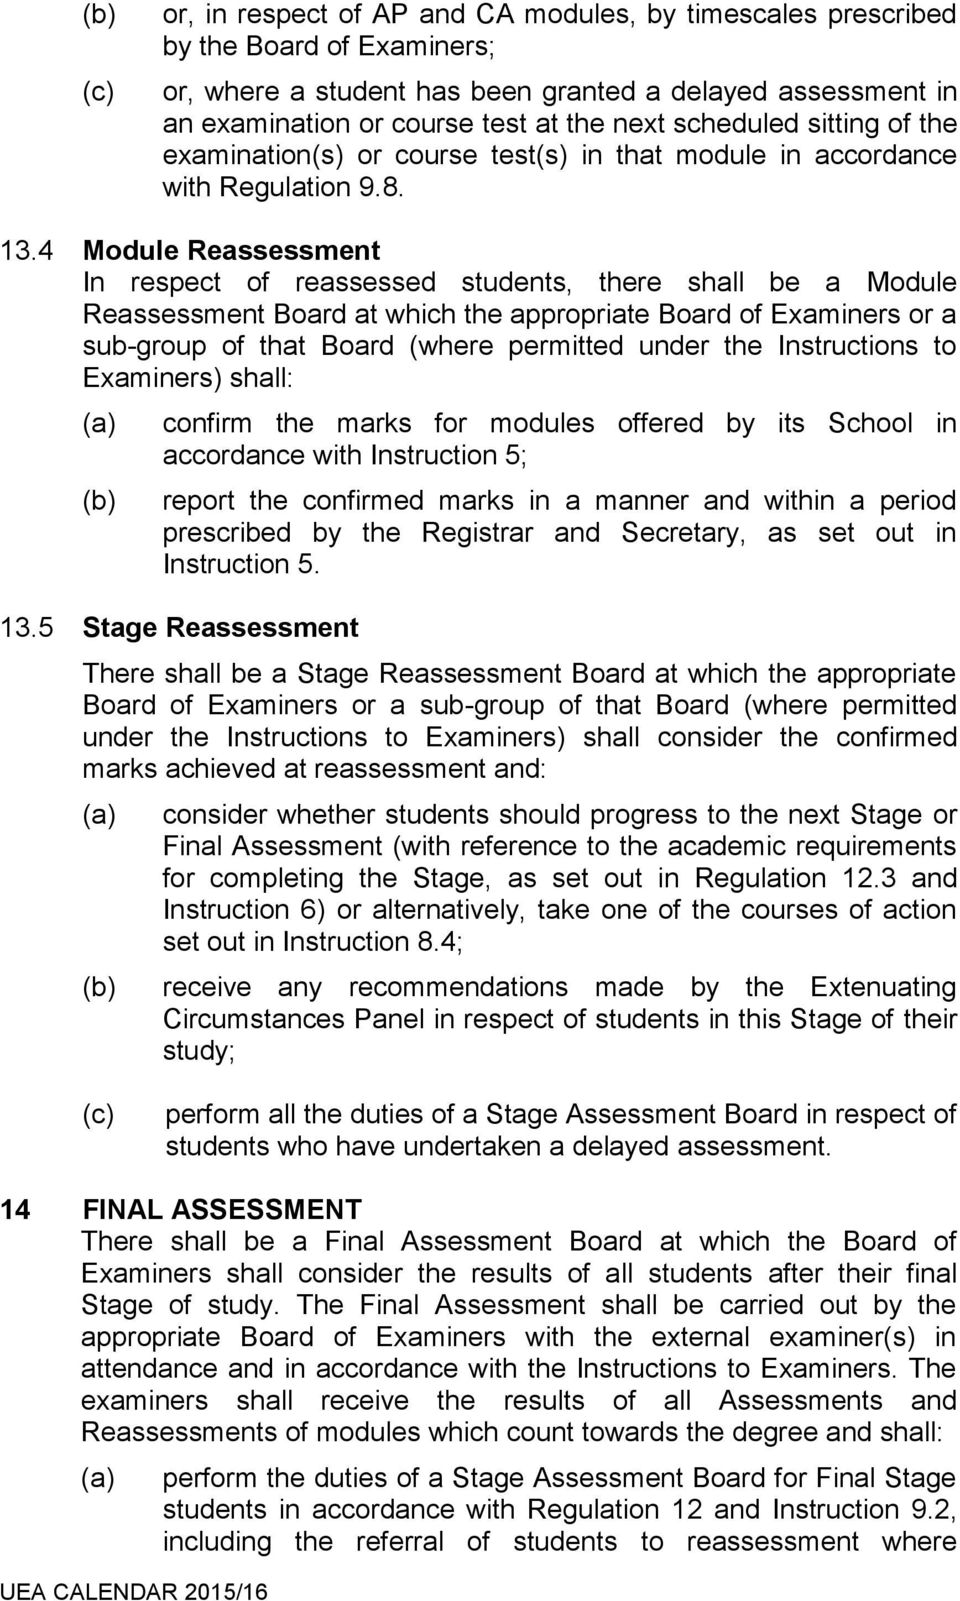 4 Module Reassessment In respect of reassessed students, there shall be a Module Reassessment Board at which the appropriate Board of Examiners or a sub-group of that Board (where permitted under the